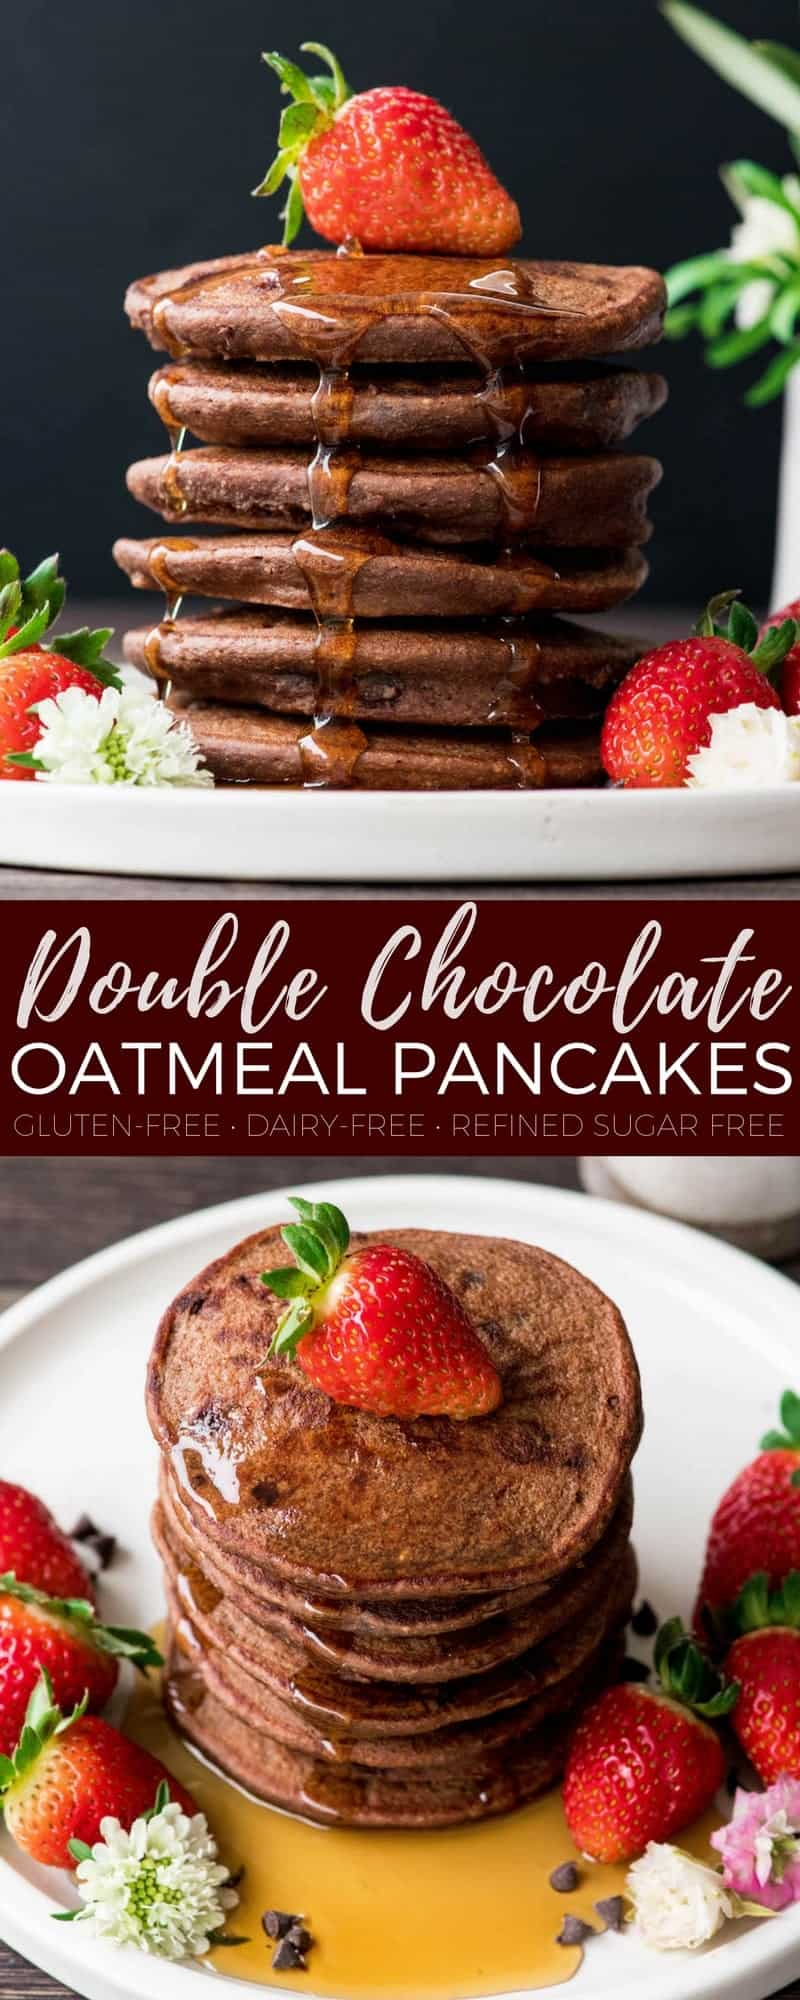 This Healthy Chocolate Pancakes Recipe is a special yet nutritious breakfast that is dairy-free & has no refined sugar! Because chocolate for breakfast is always a good choice! #pancakes #breakfast #glutenfree #dairyfree #chocolate #refinedsugarfree #healthyrecipe #recipevideo